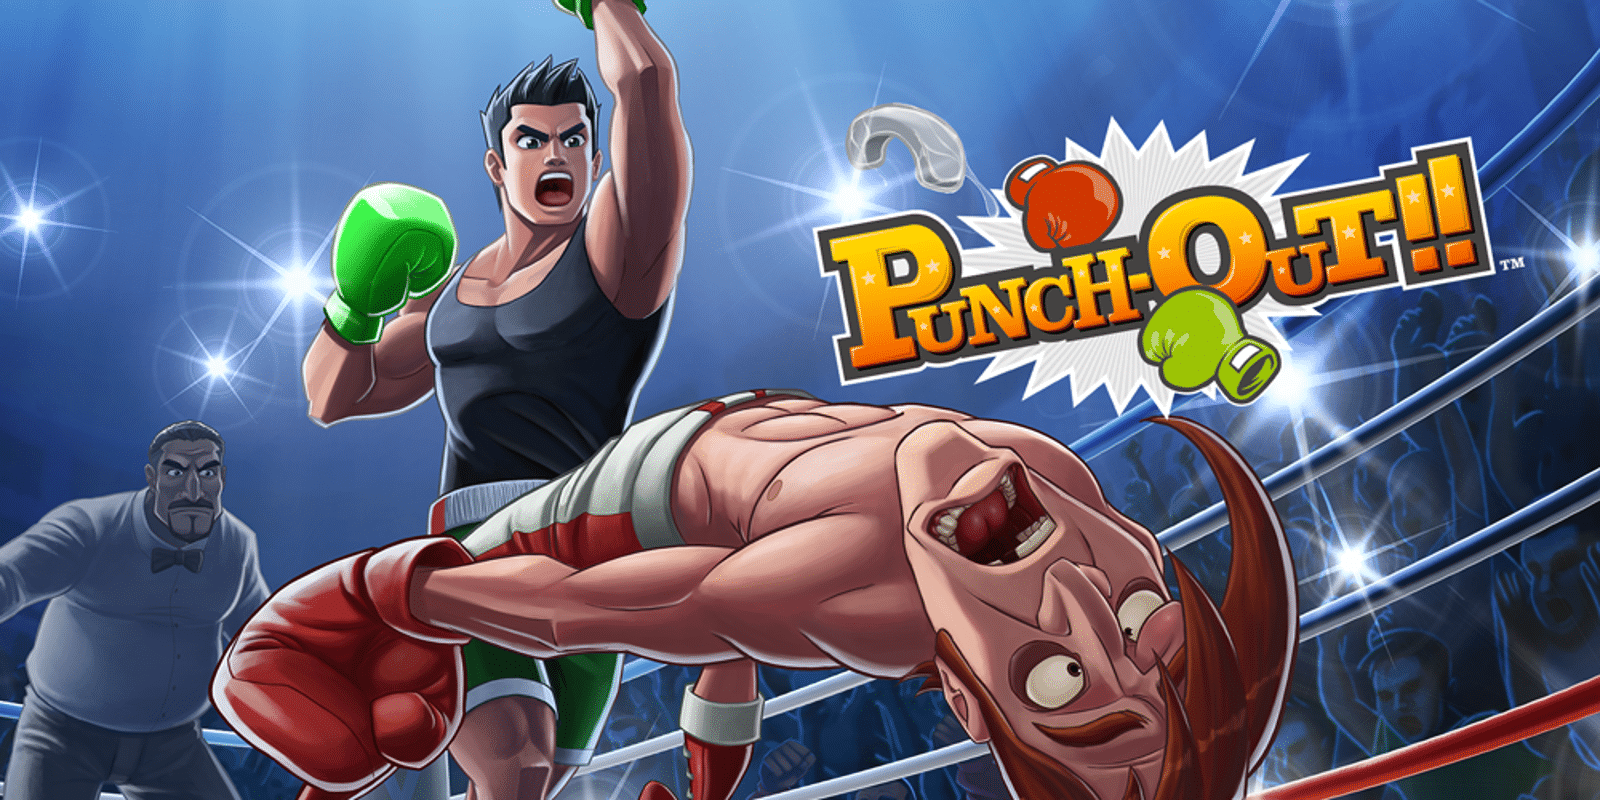 Punch Out!! - ©Nintendo